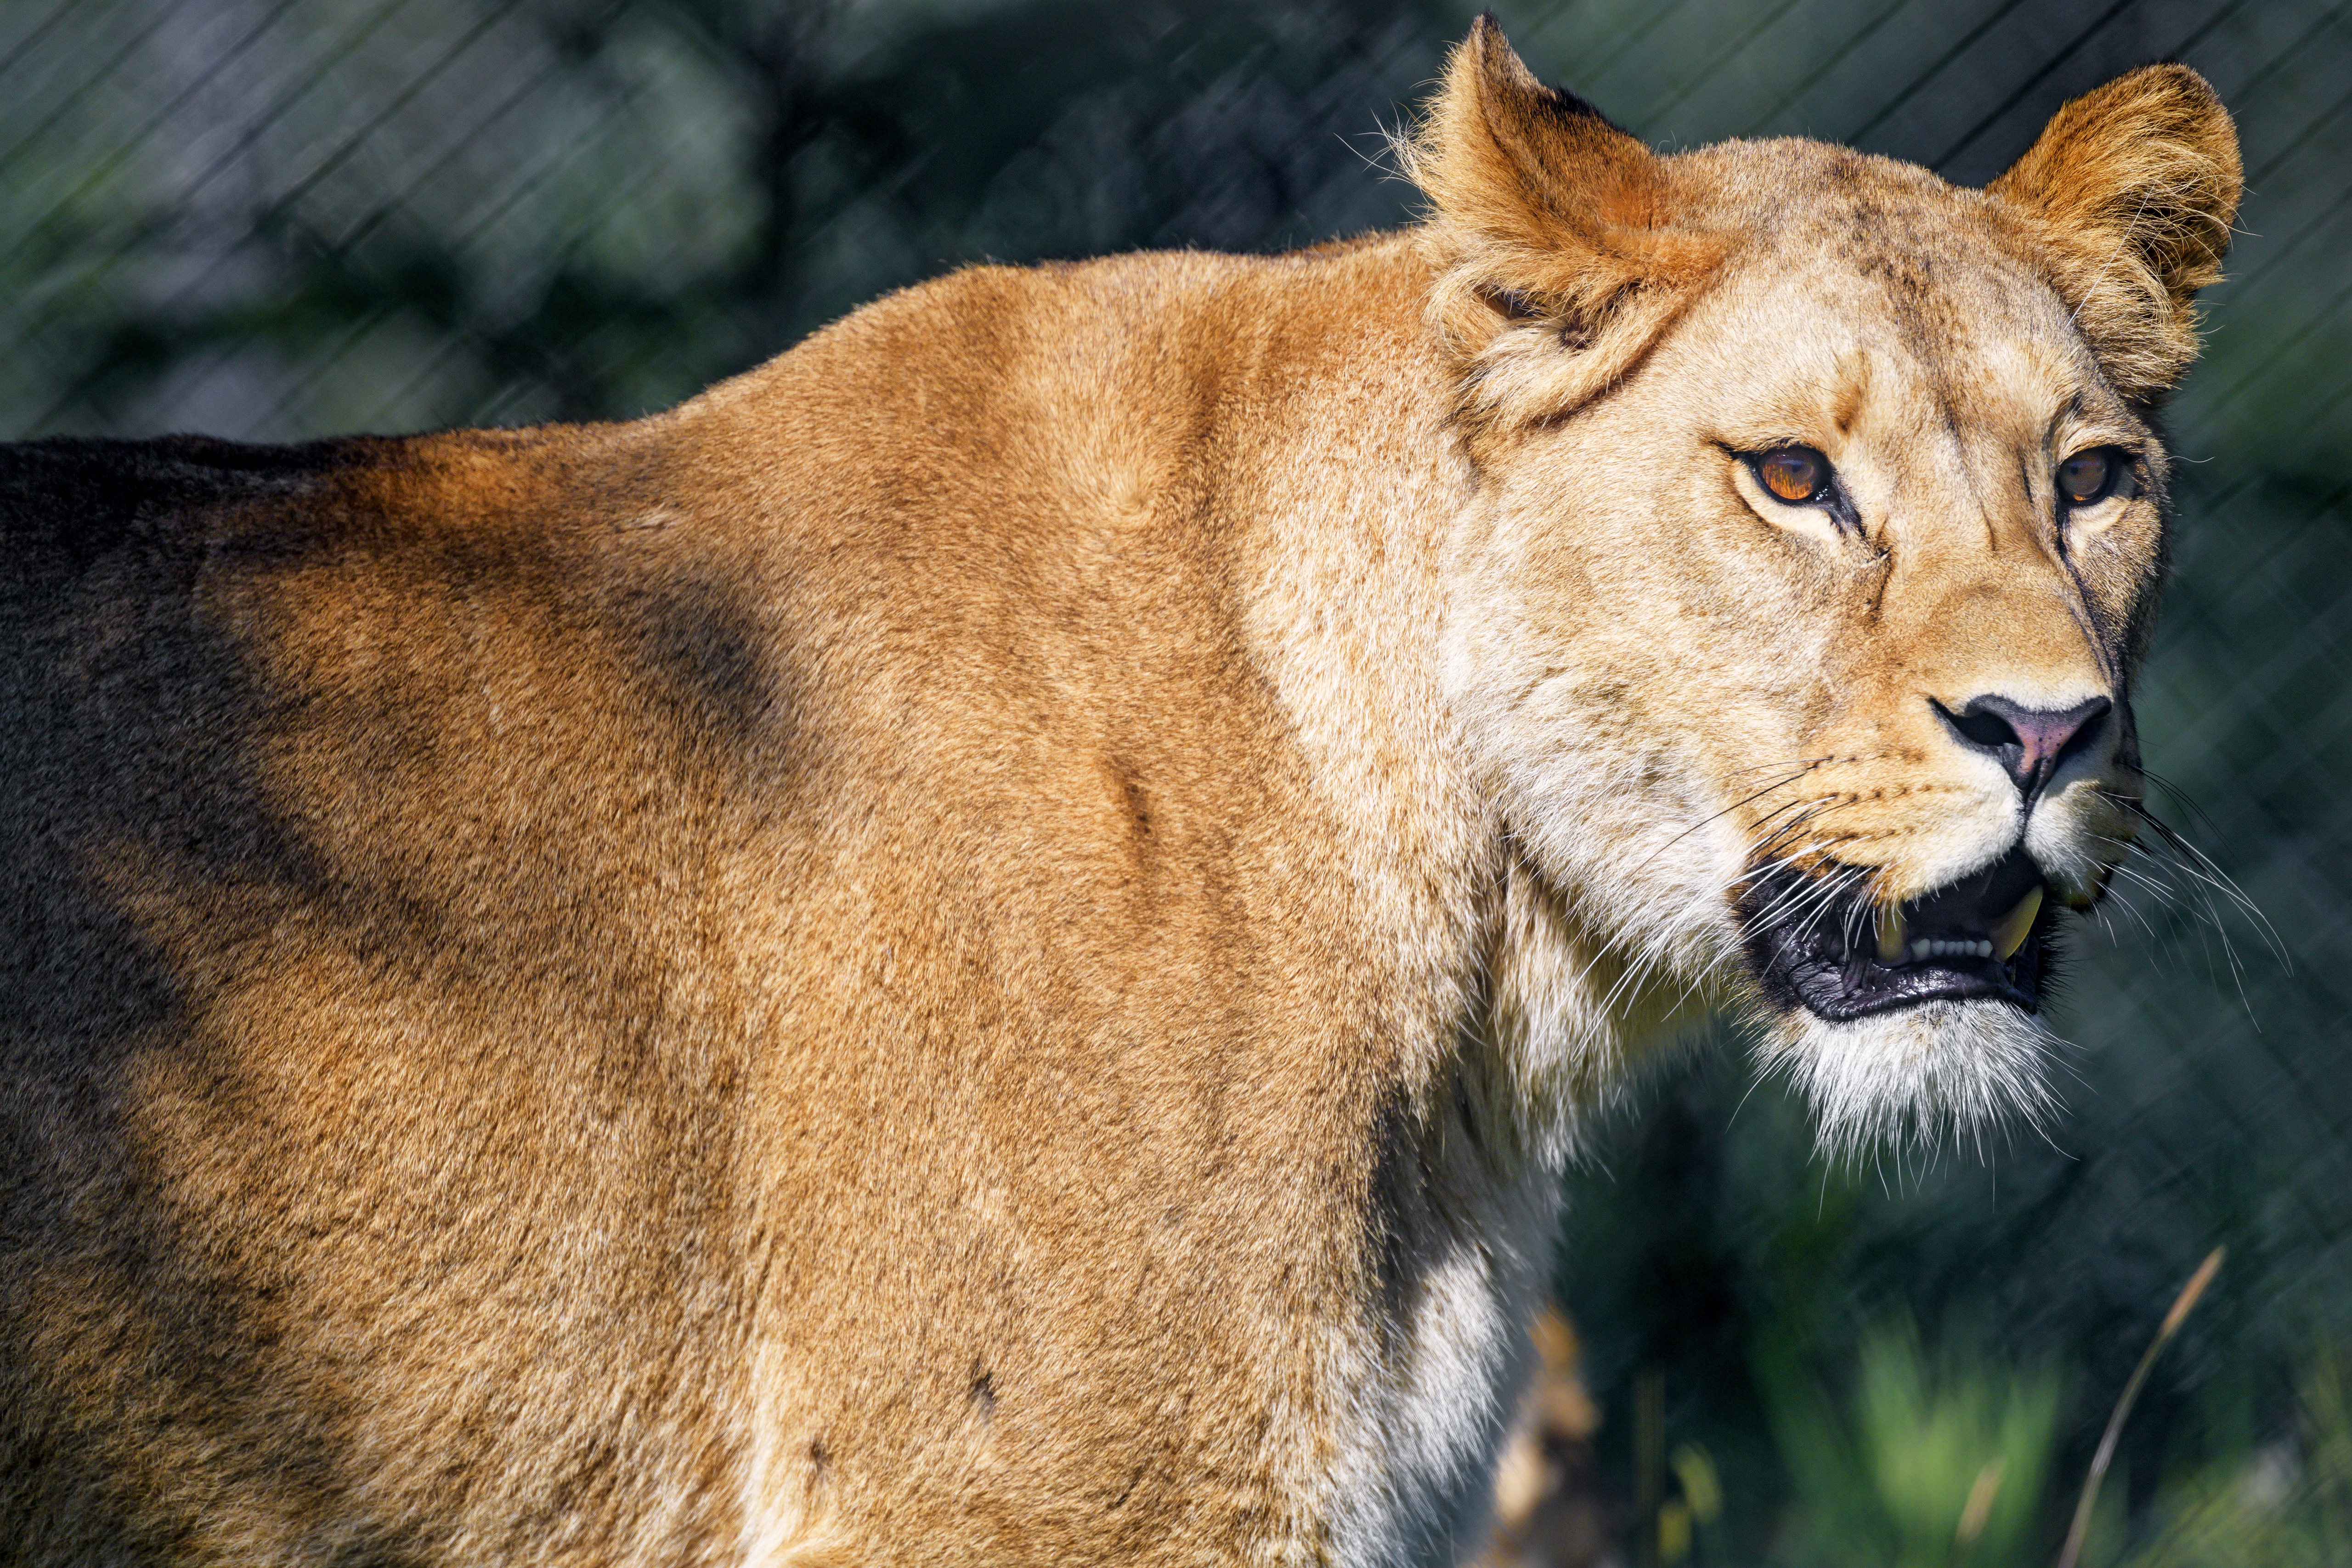 149607 download wallpaper Animals, Lioness, Predator, Sight, Opinion, To Fall, Mouth, Big Cat screensavers and pictures for free